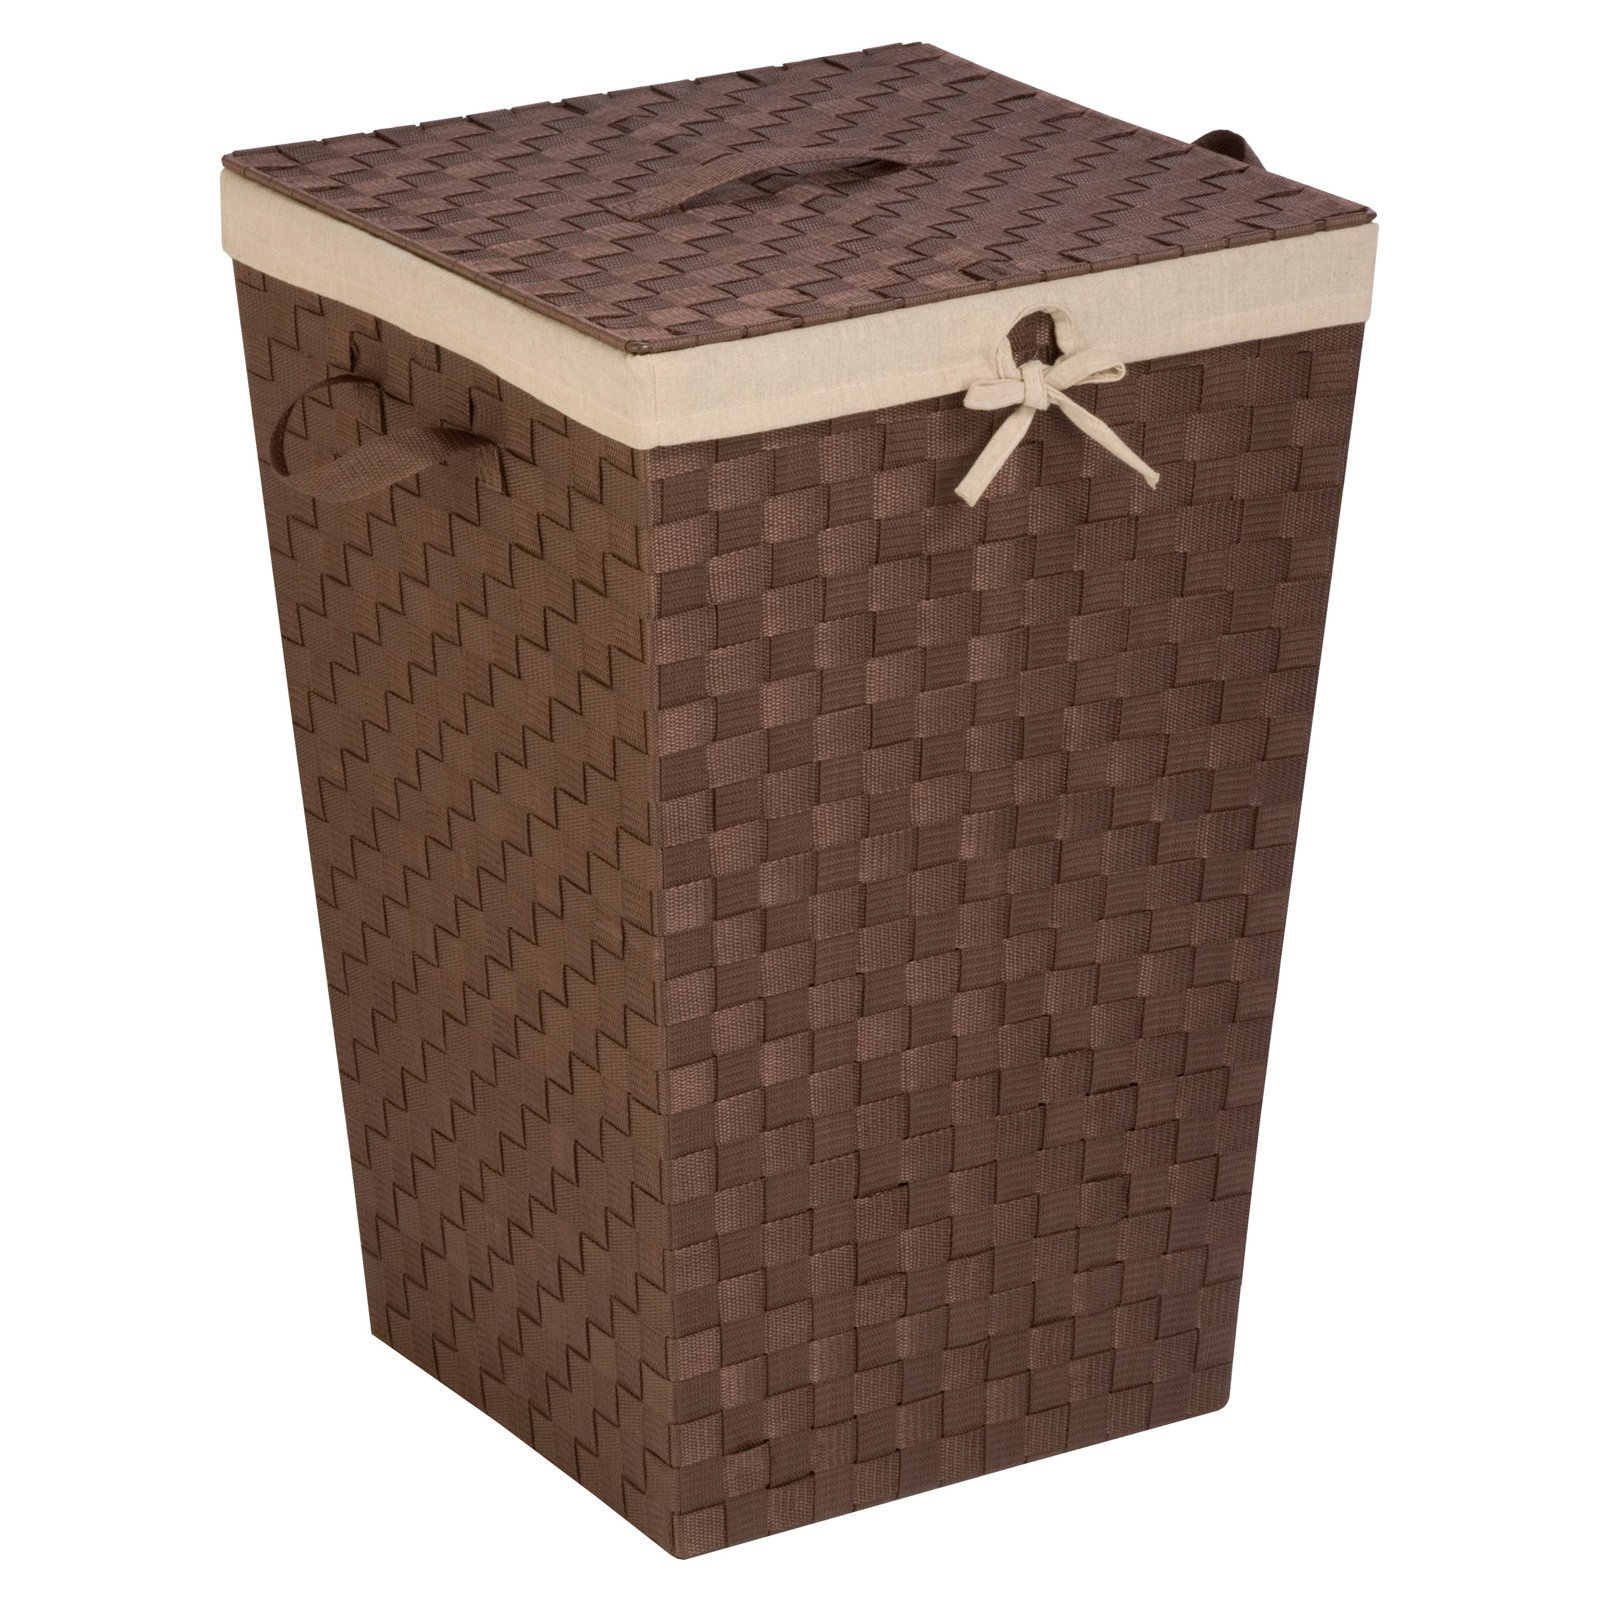 Honey-Can-Do Woven Strap Hamper with Liner and Lid, Java Brown by Generic